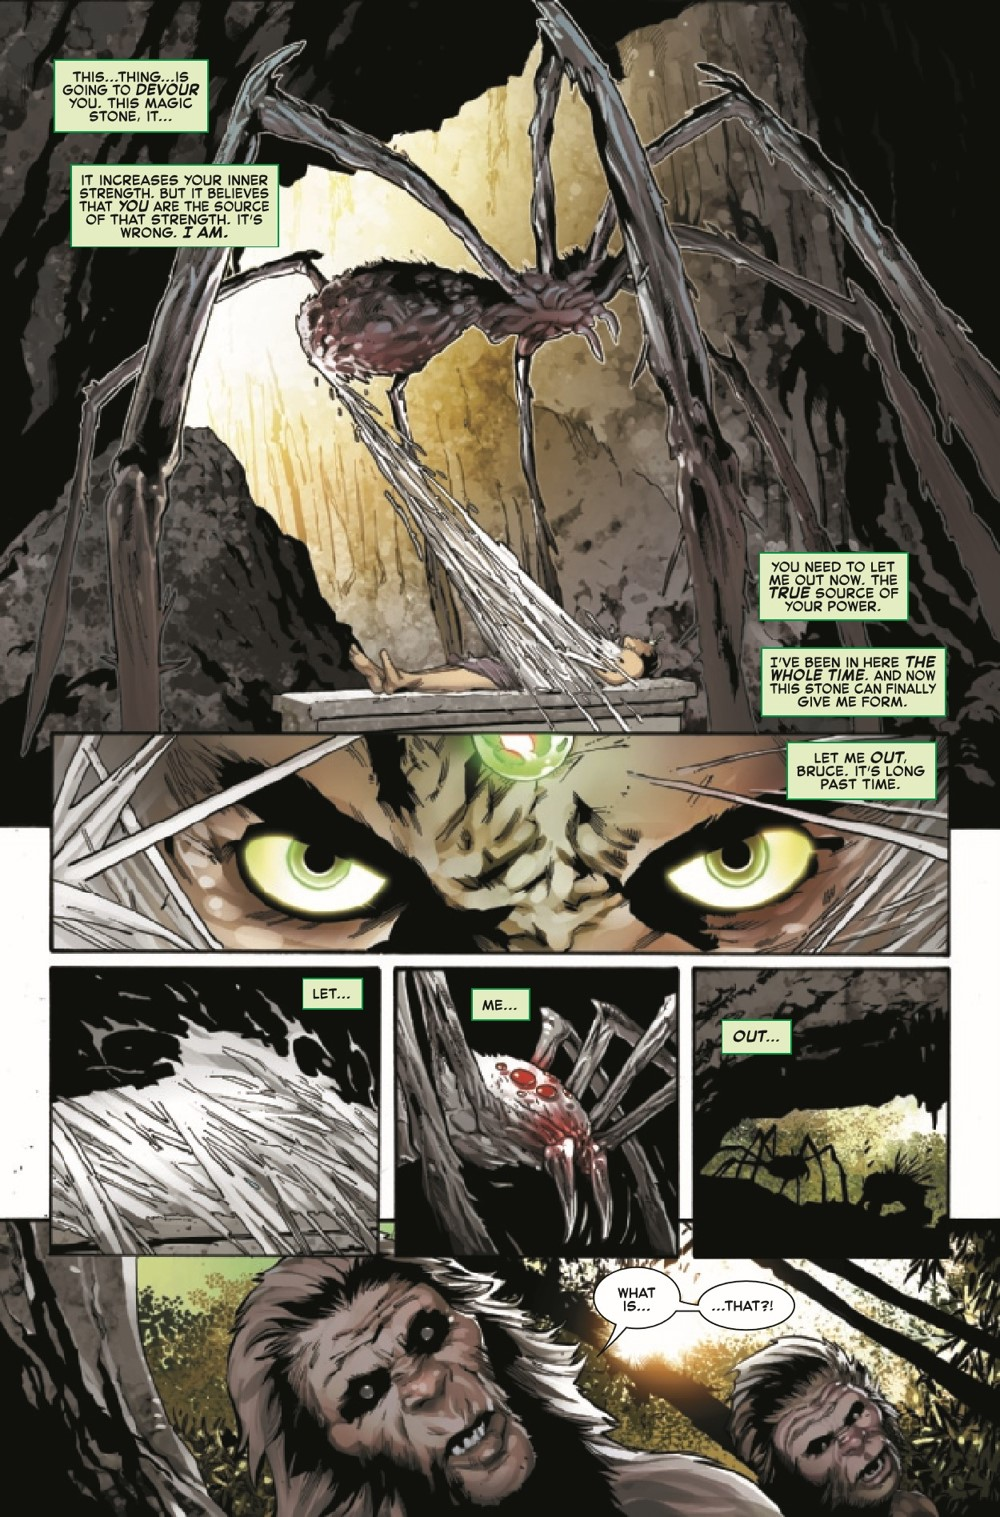 SYMBIOTESMCR2021003_Preview-5 ComicList Previews: SYMBIOTE SPIDER-MAN CROSSROADS #3 (OF 5)